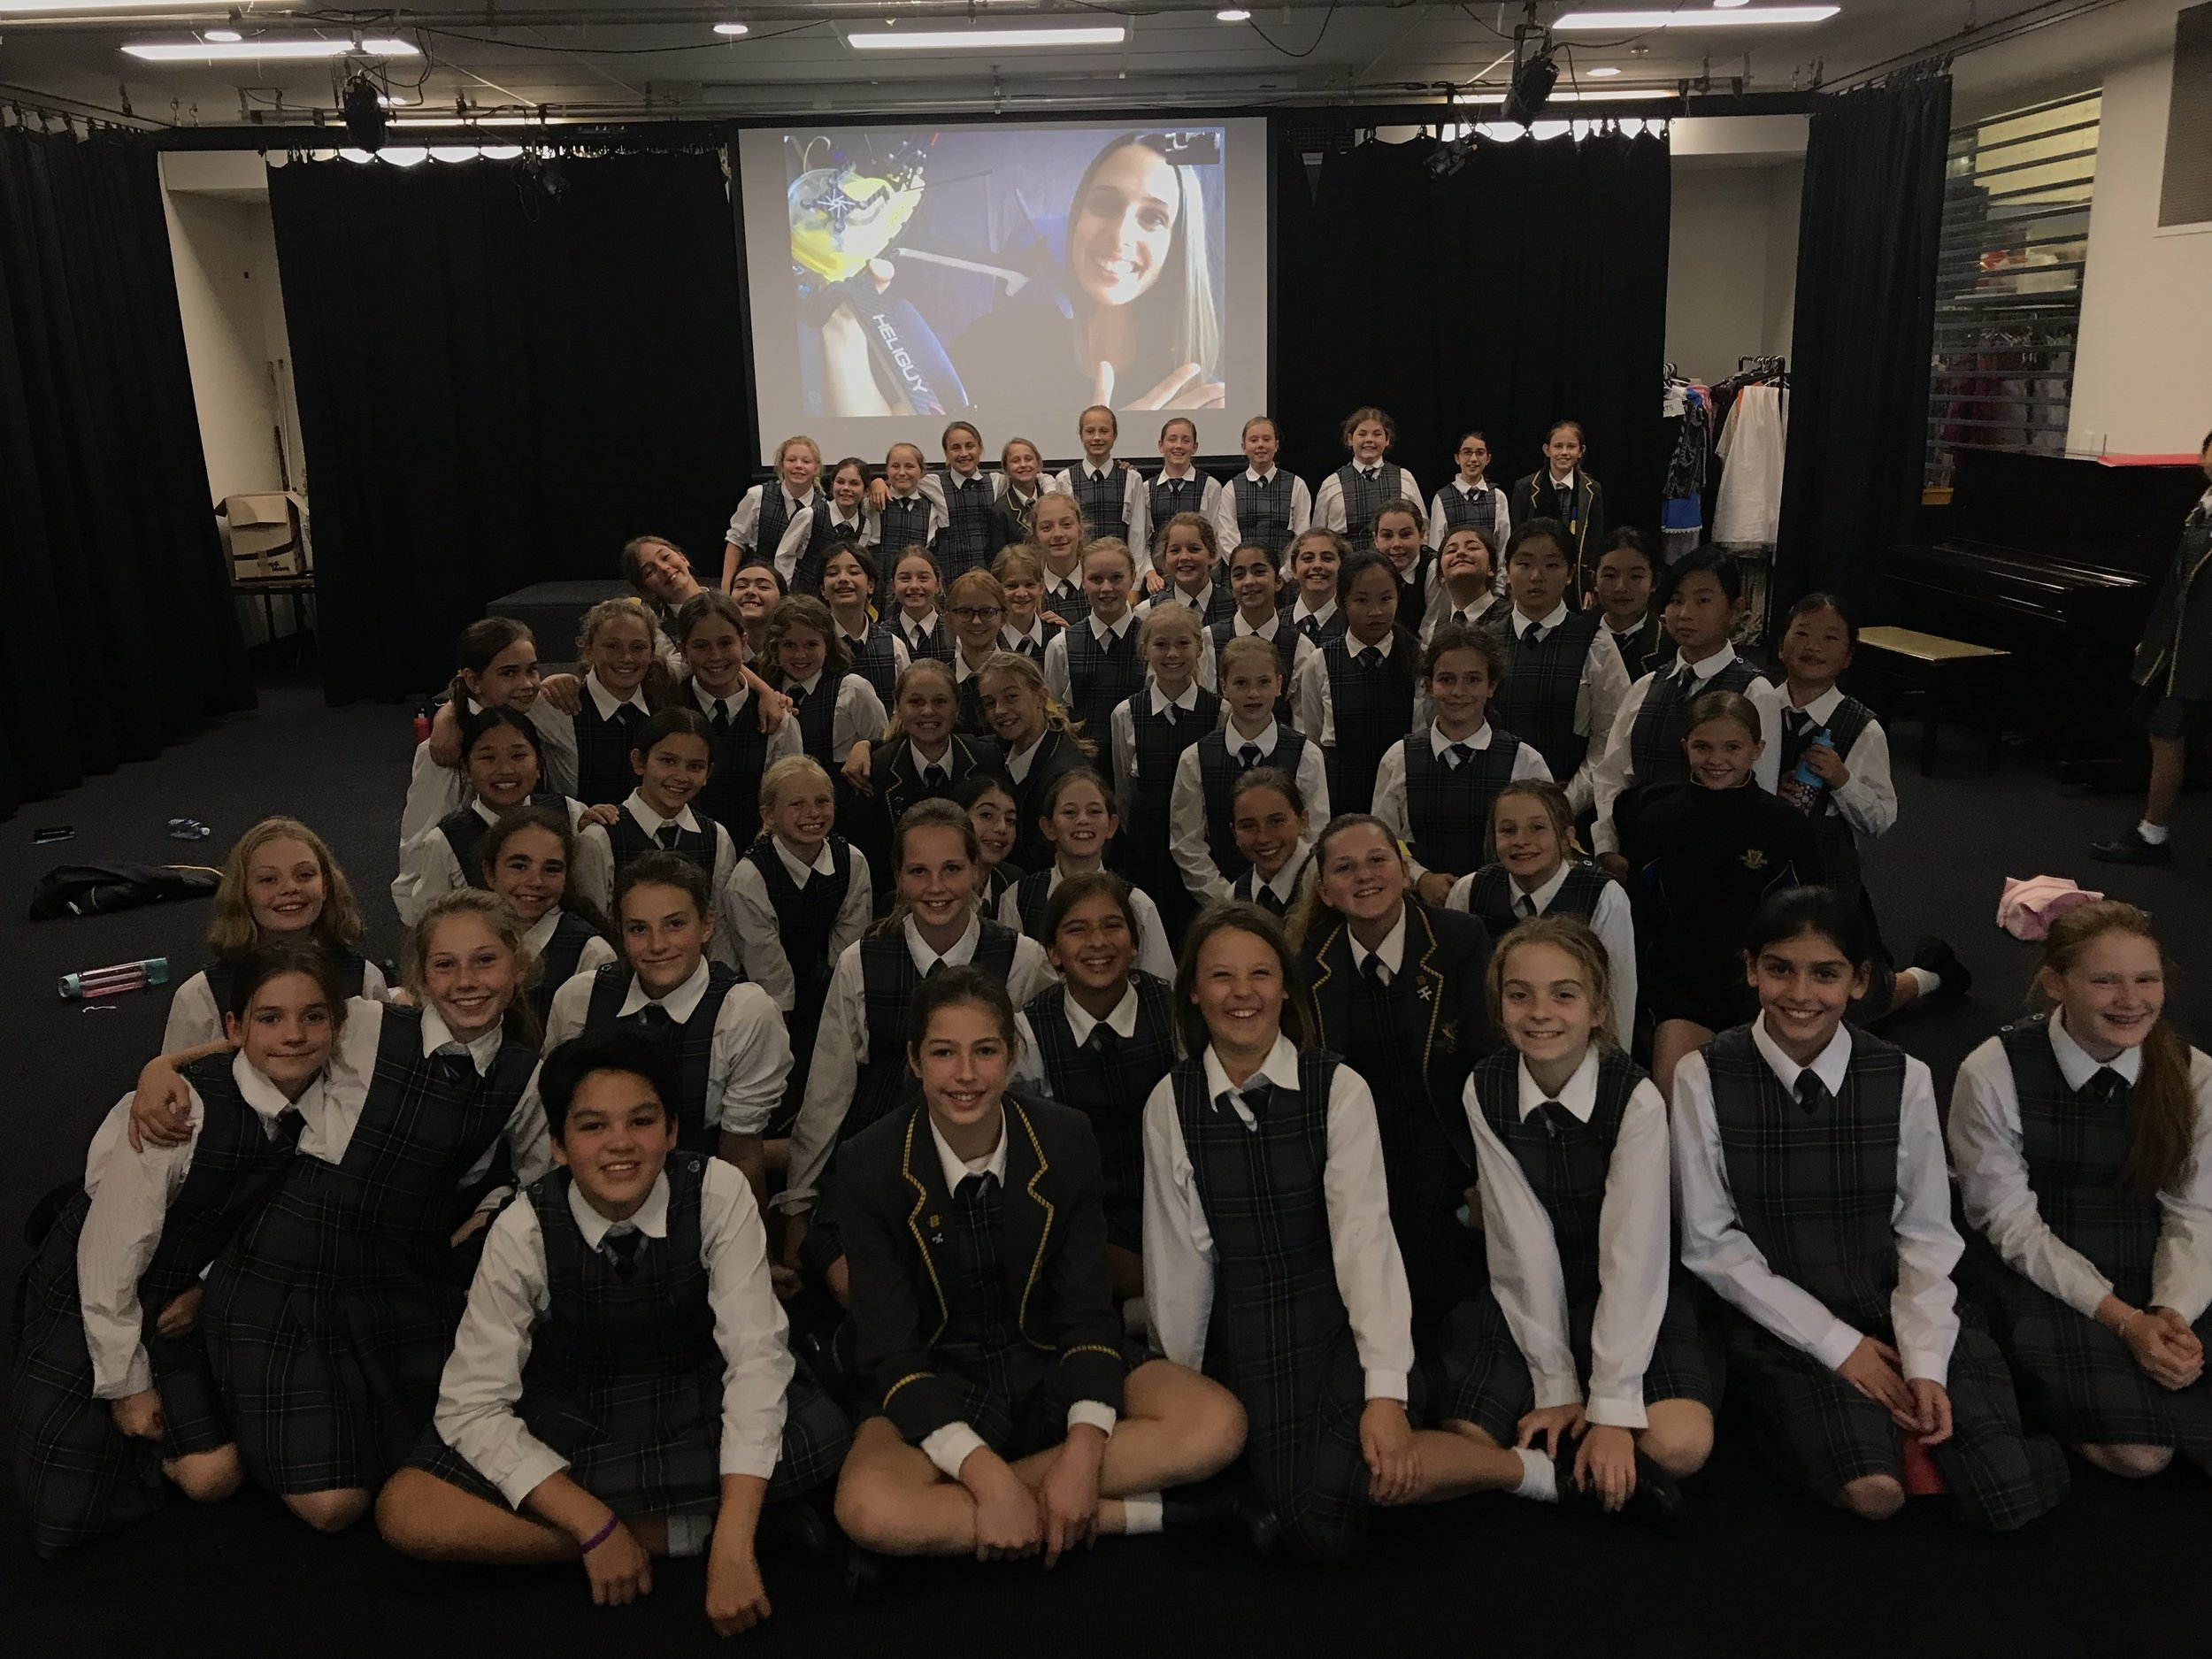 Skype with Kambala Girls School, Sydney - Vanessa spoke about innovation, technology and whale research with a very enthusiastic group of students.